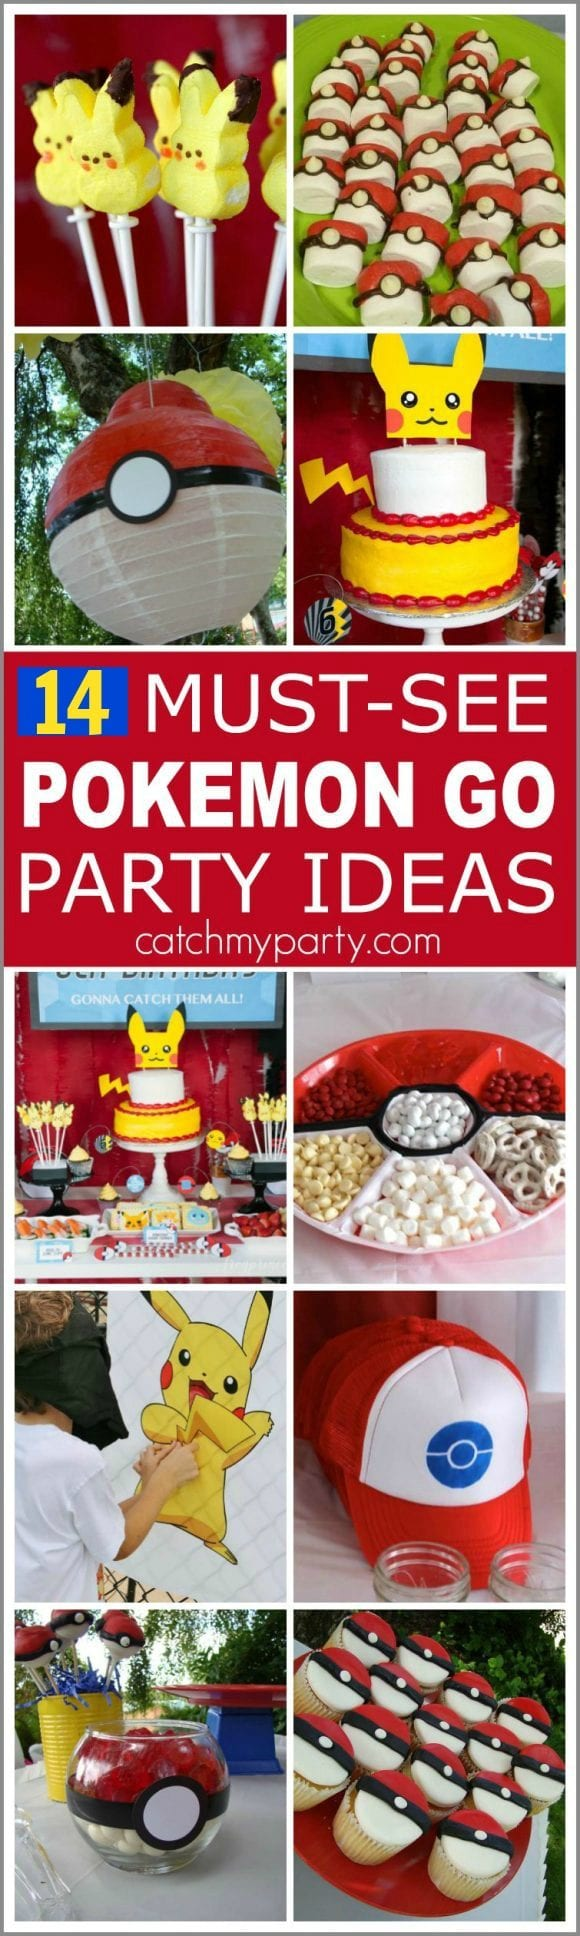 14 Must-See Pokemon Go Party Ideas | Catchmyparty.com